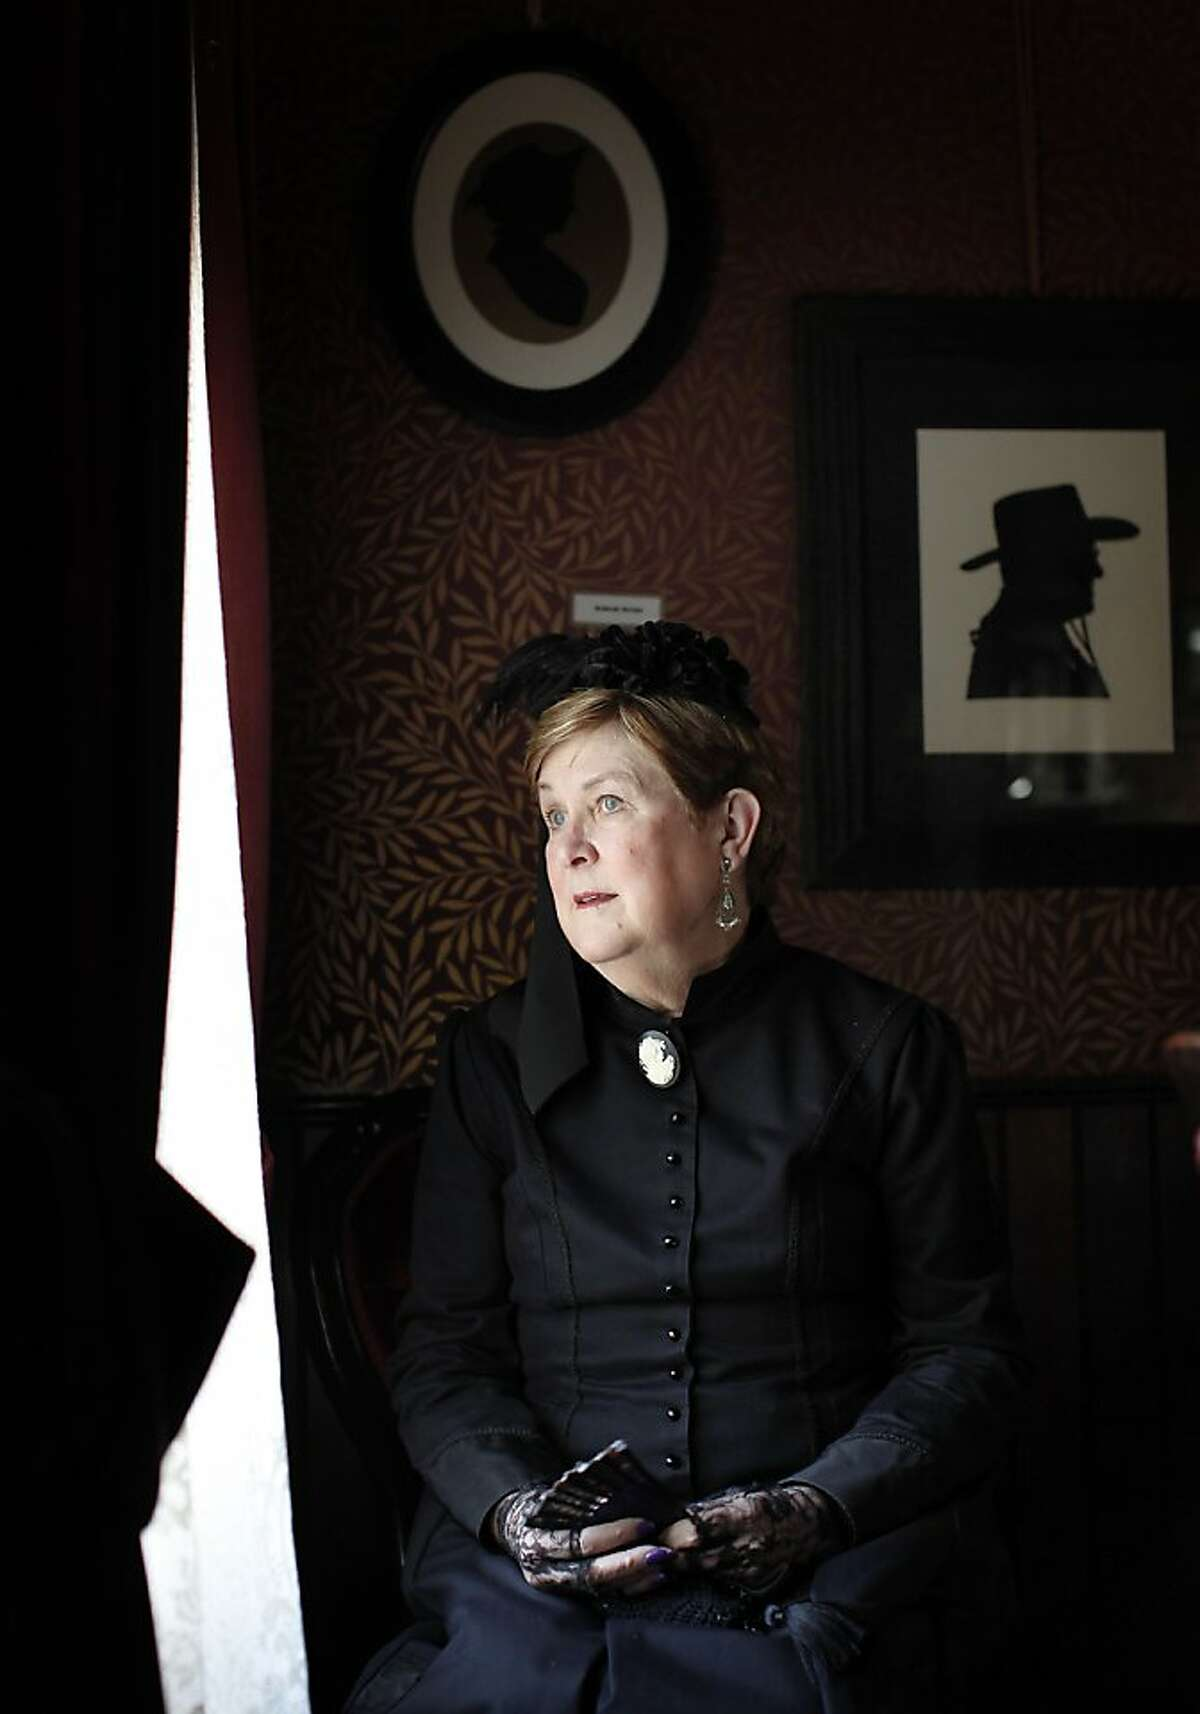 Docent Martha Wallace looks outside Rengstorff House window in Mountain View, Ca on Tuesday, March 6, 2012